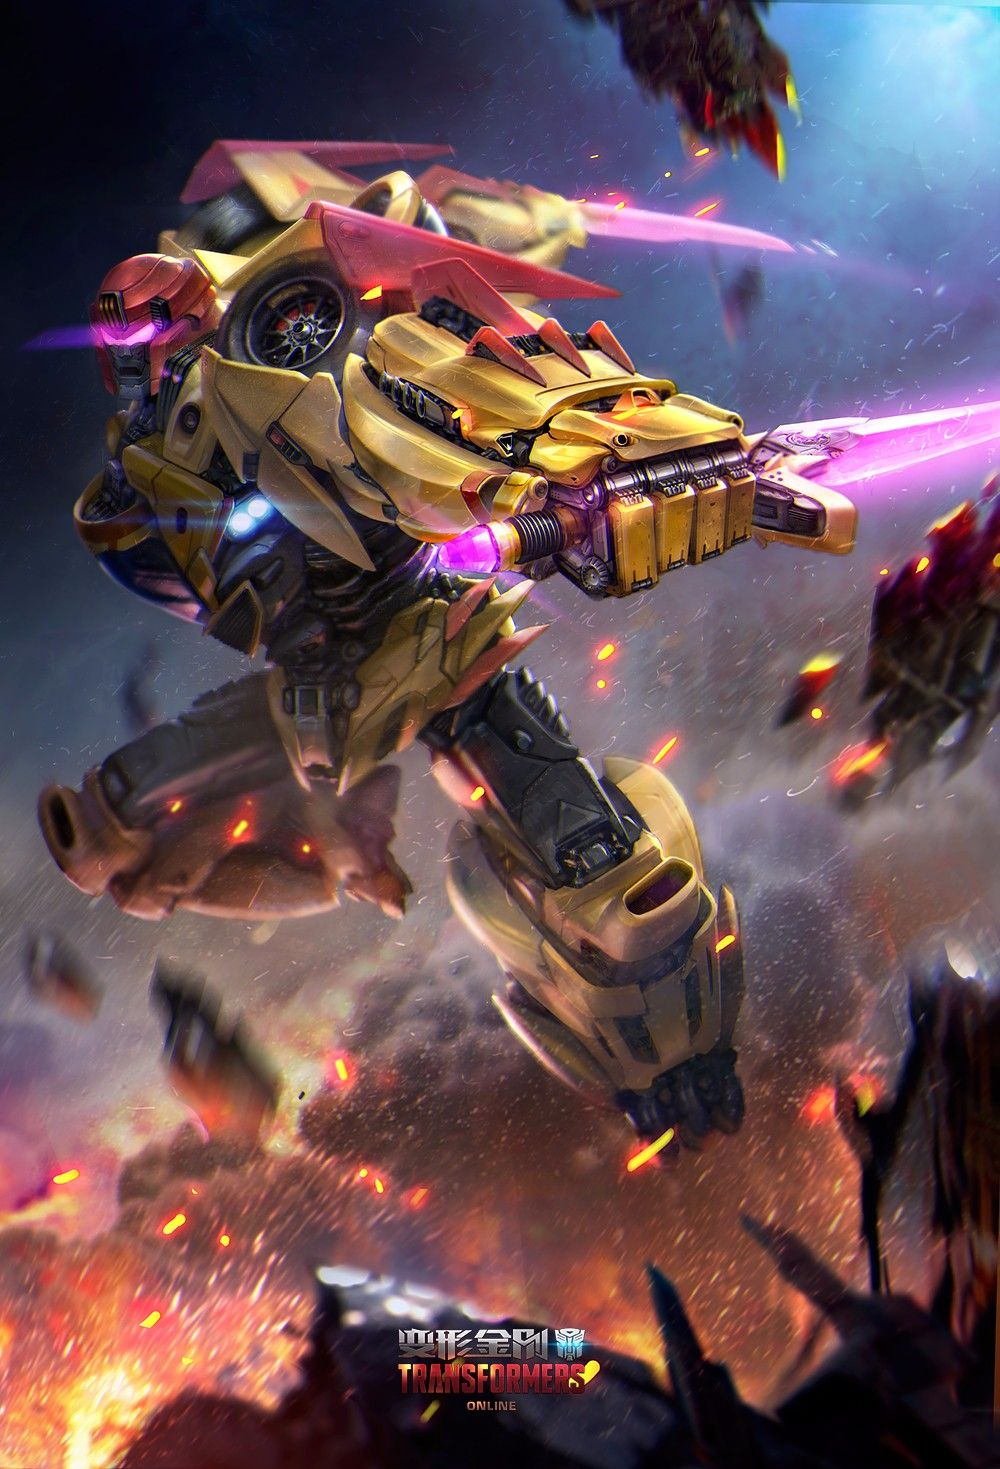 Transformers-Online-Screenshot-9.jpg